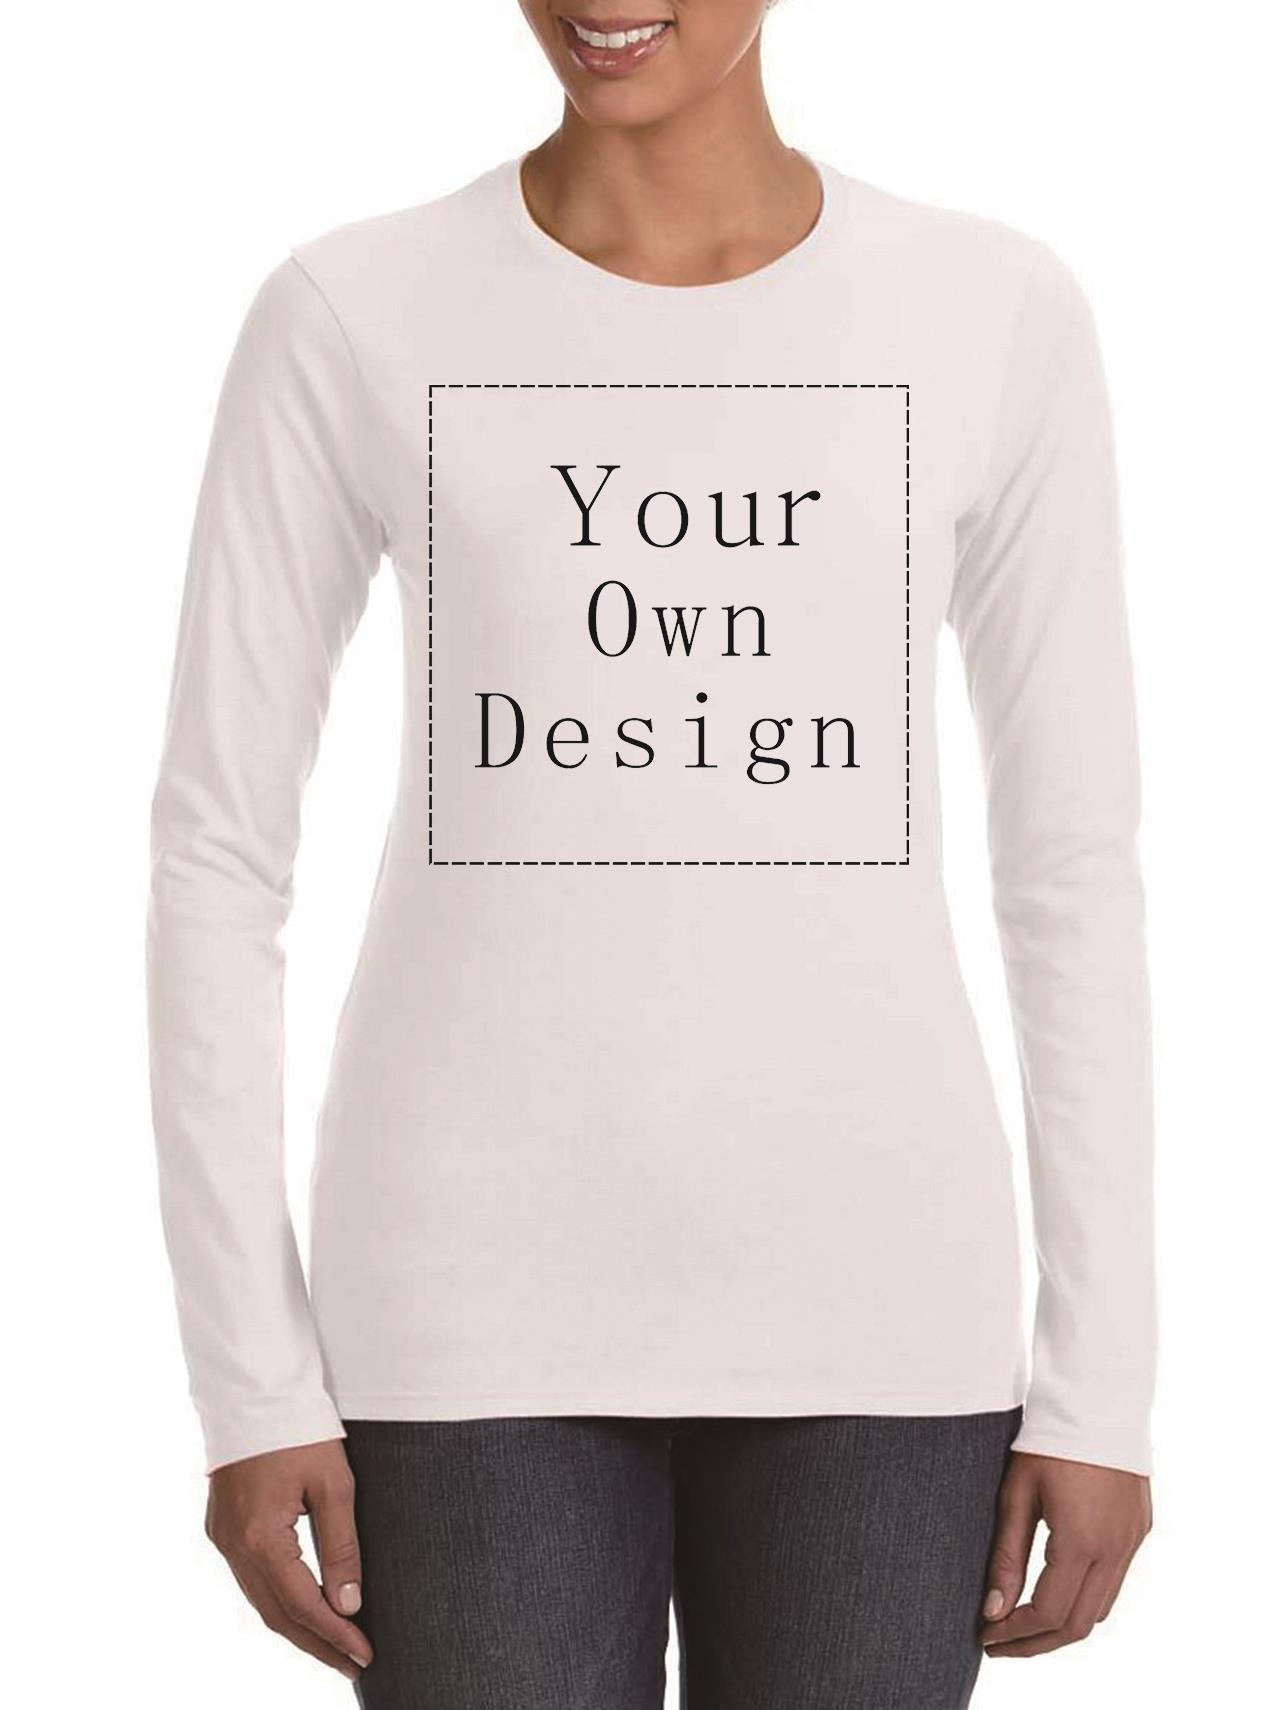 Design your own t shirt good quality - 2016 Women Your Own Design T Shirt Novelty Tops Lady Custom Printed Long Sleeve Tees